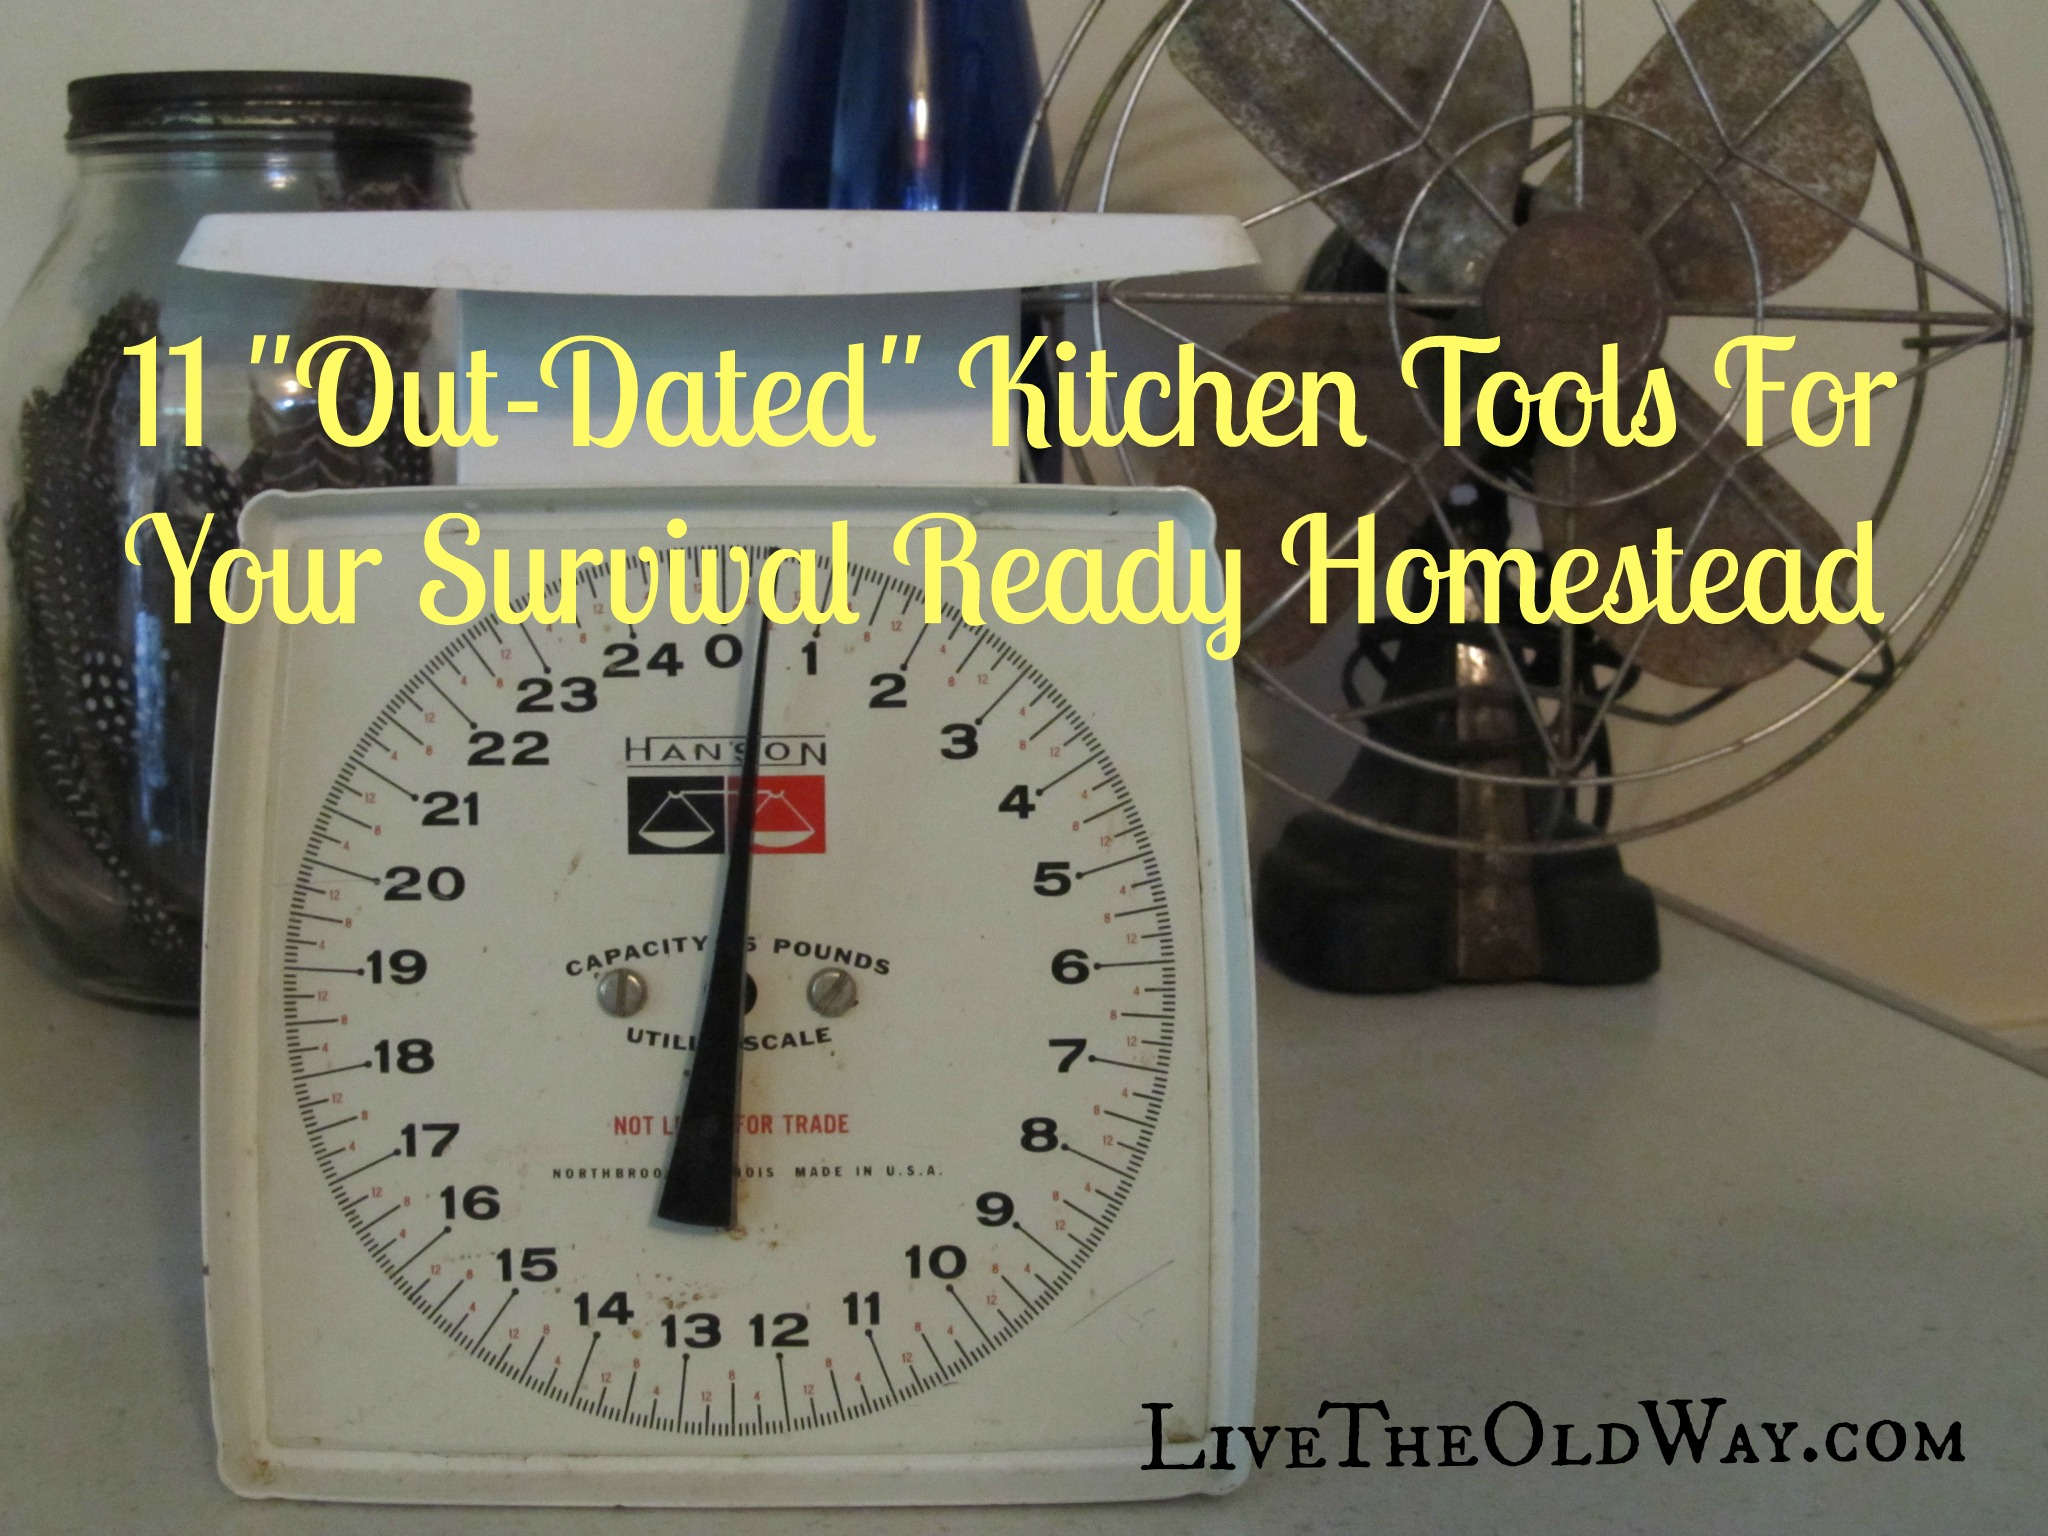 Survival tools, Homestead kitchen tools